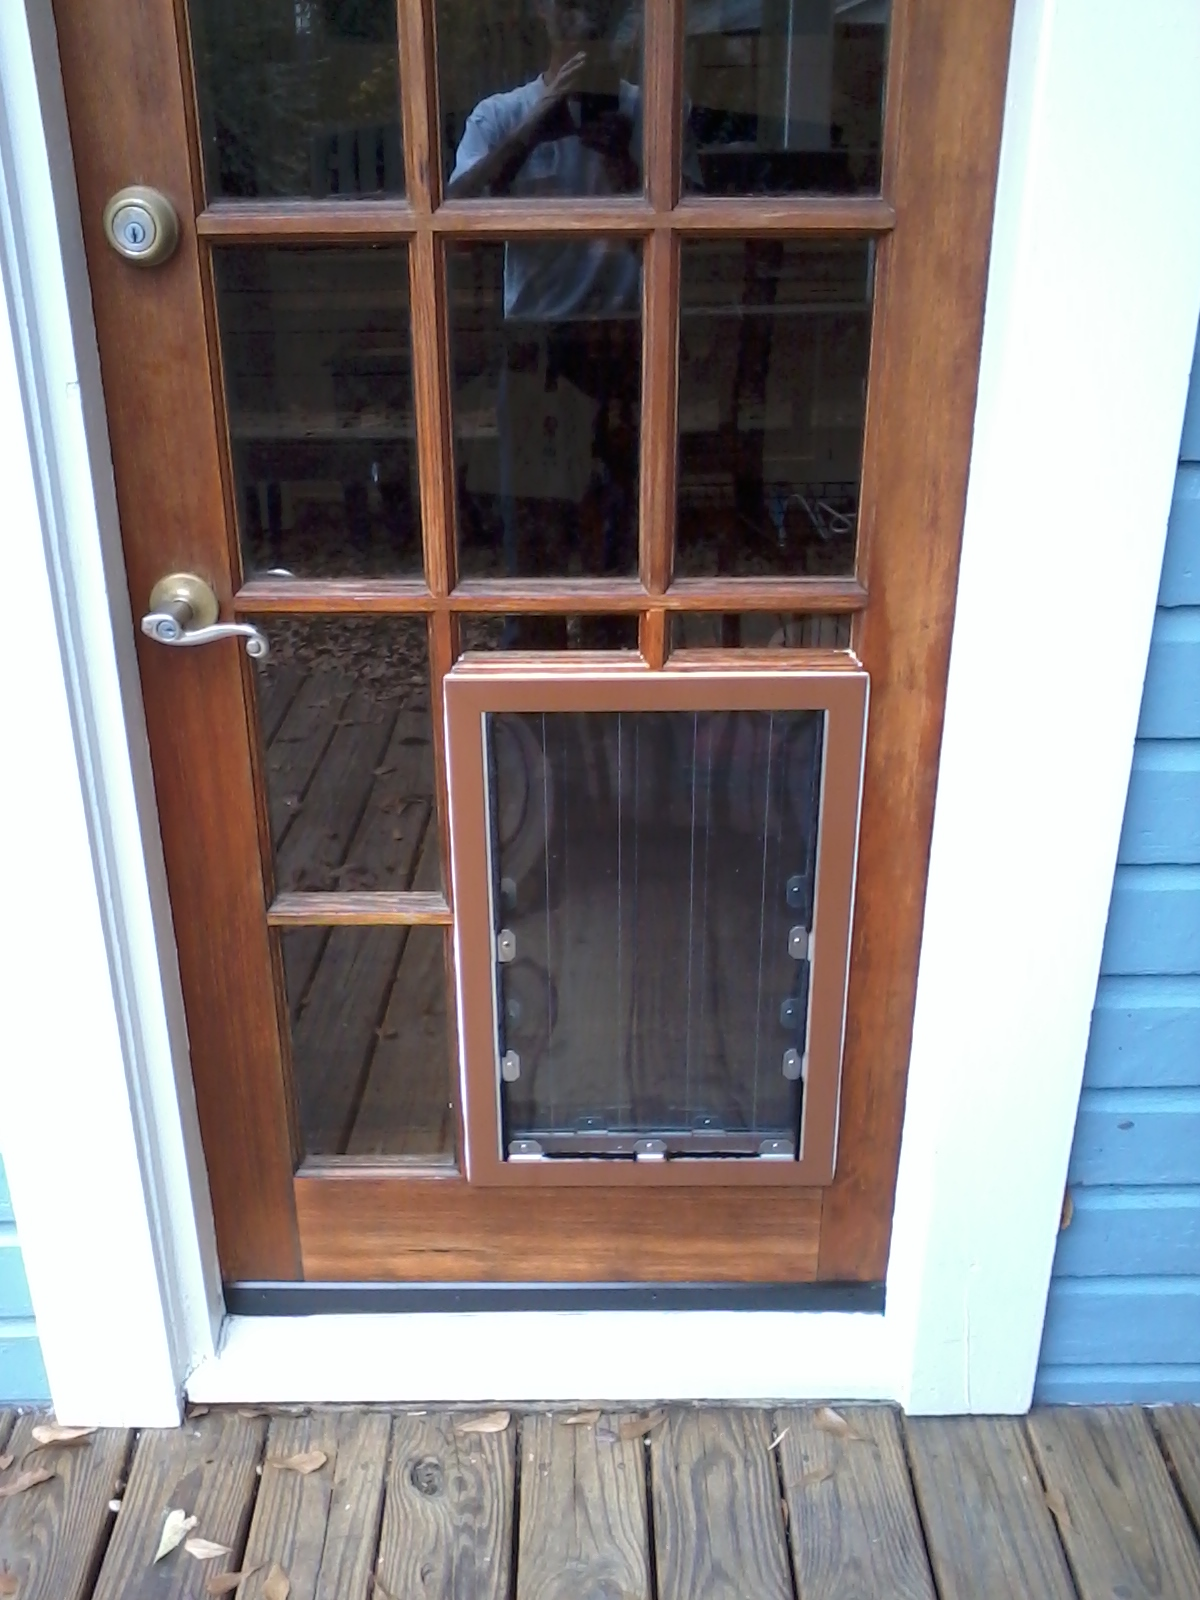 Pet Door Installed in French Door